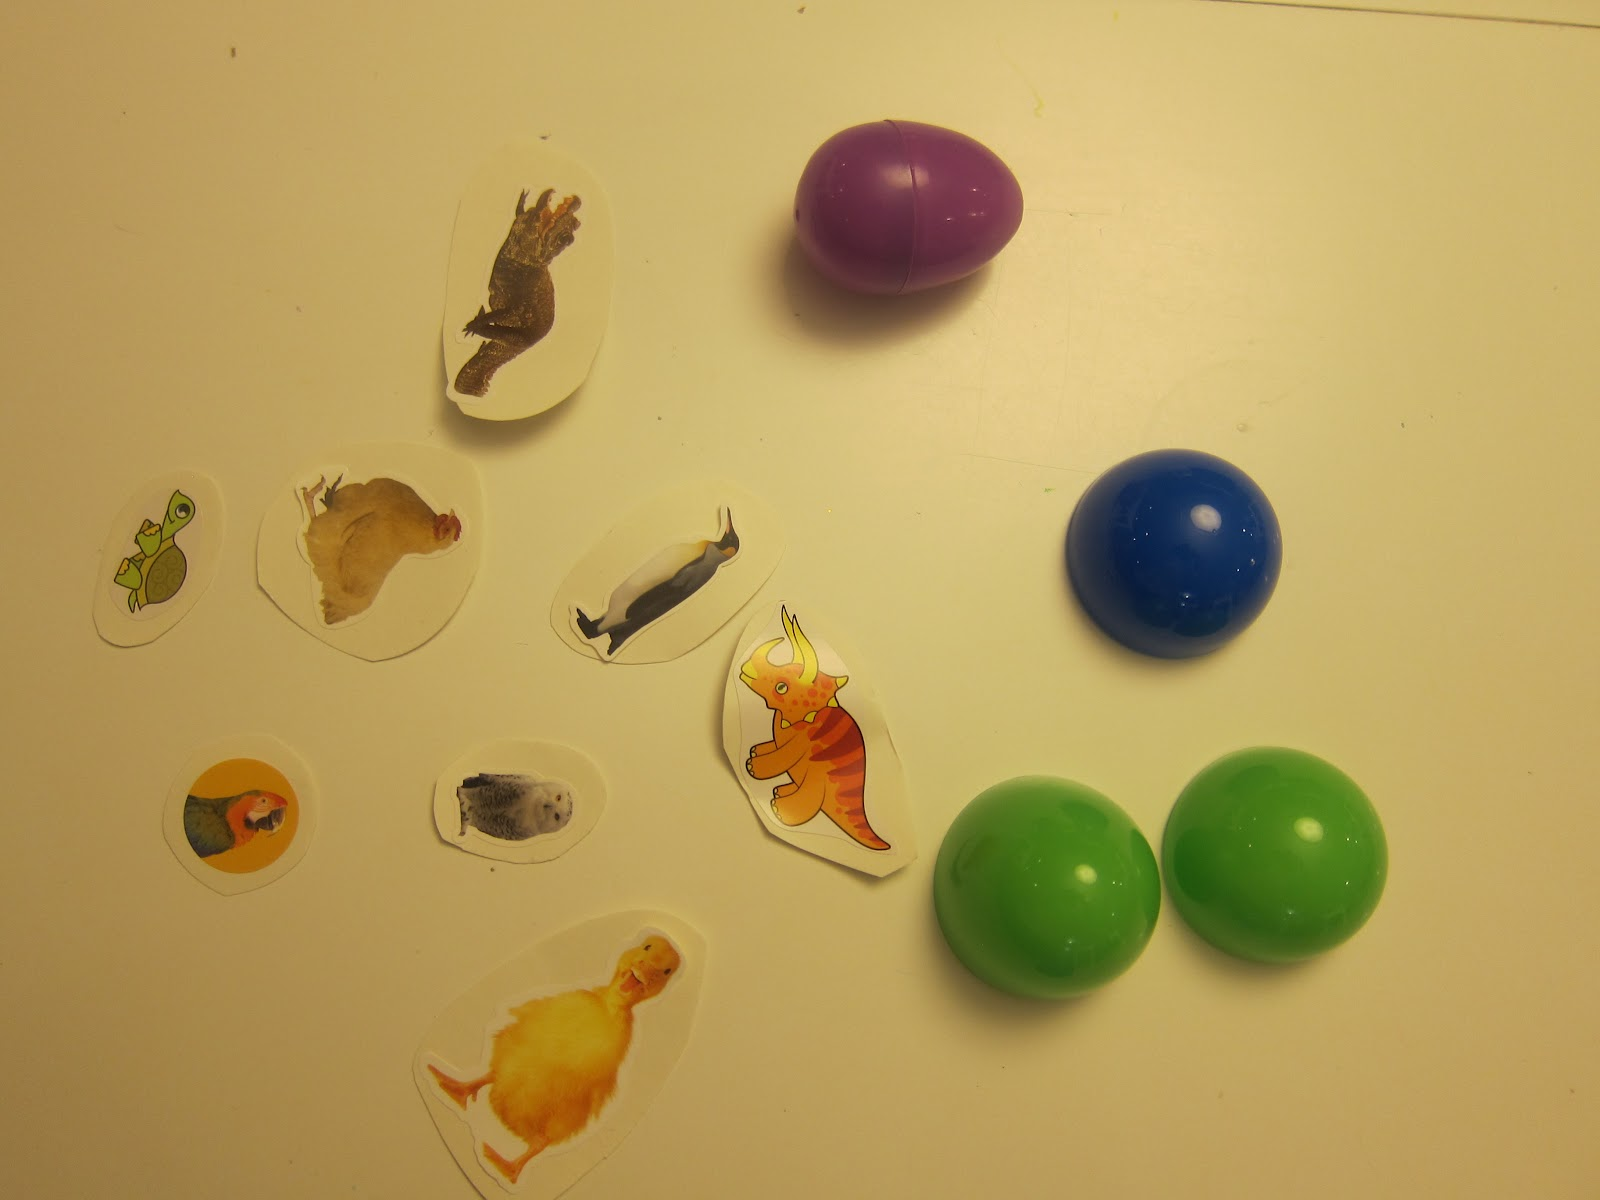 Animals That Hatch from Eggs http://adventuresinreadingwithkids.blogspot.com/2012/03/egg-hatching-game.html